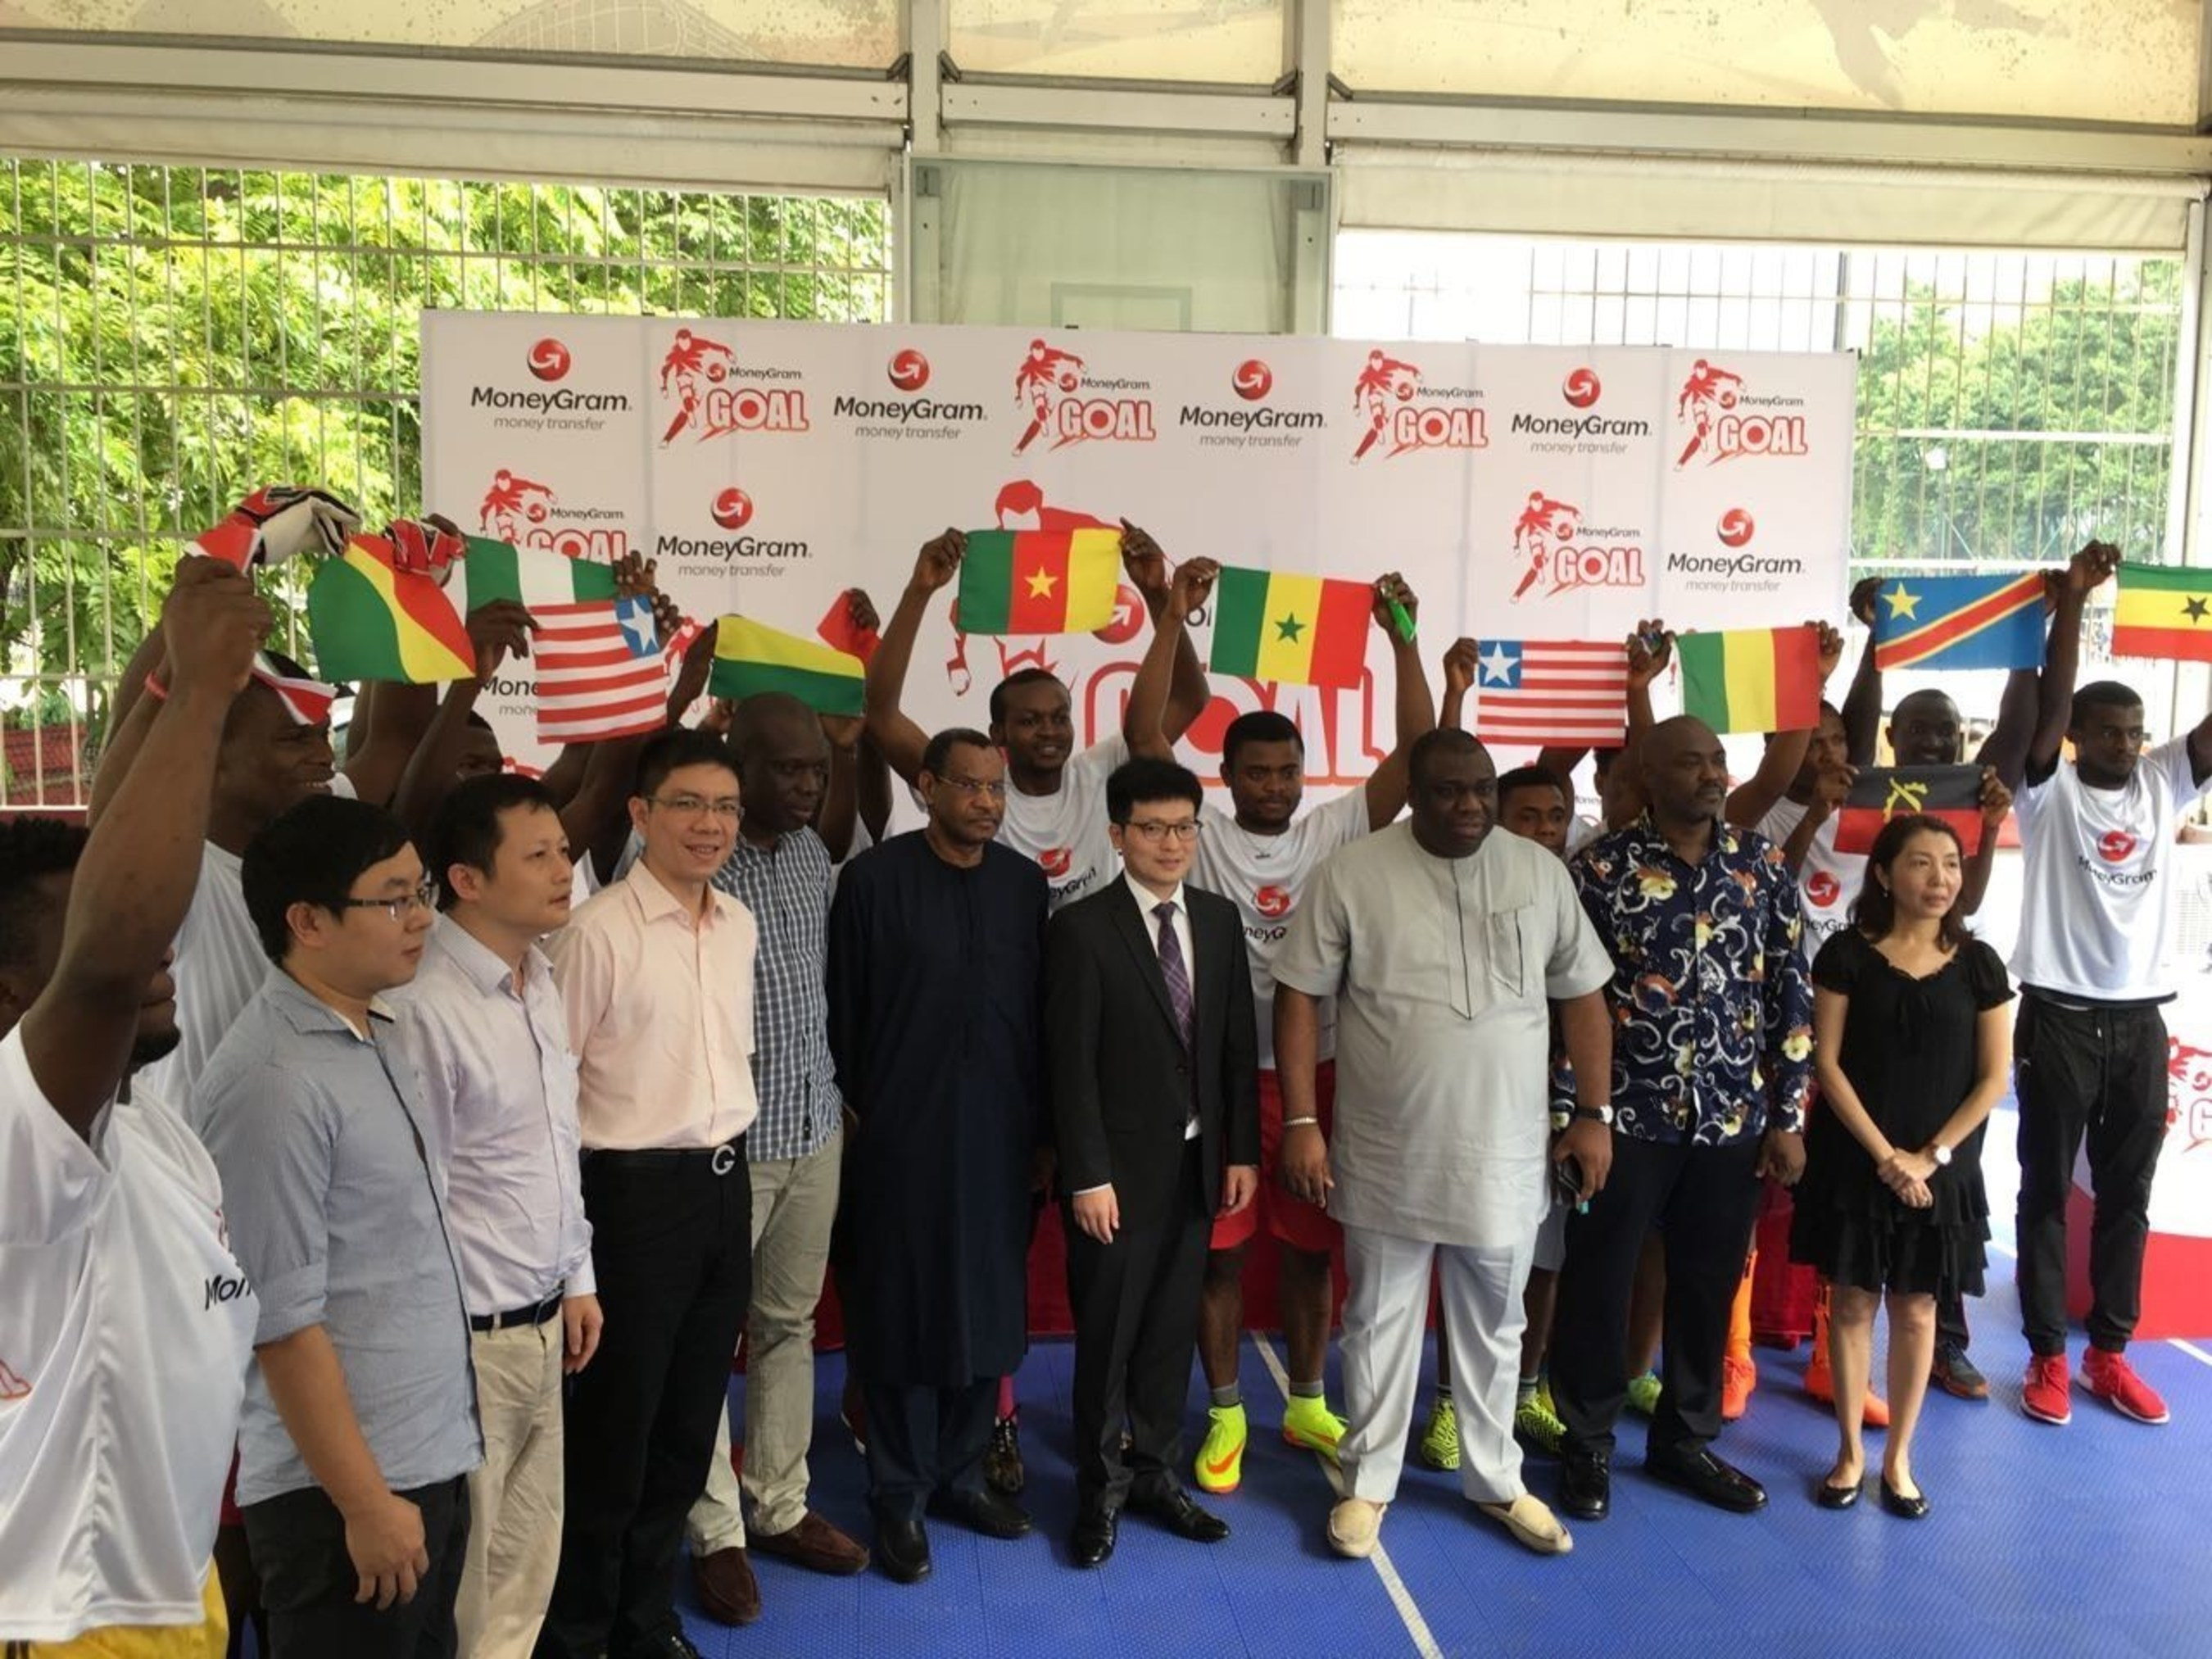 MoneyGram launched G.O.A.L. football tournament in China